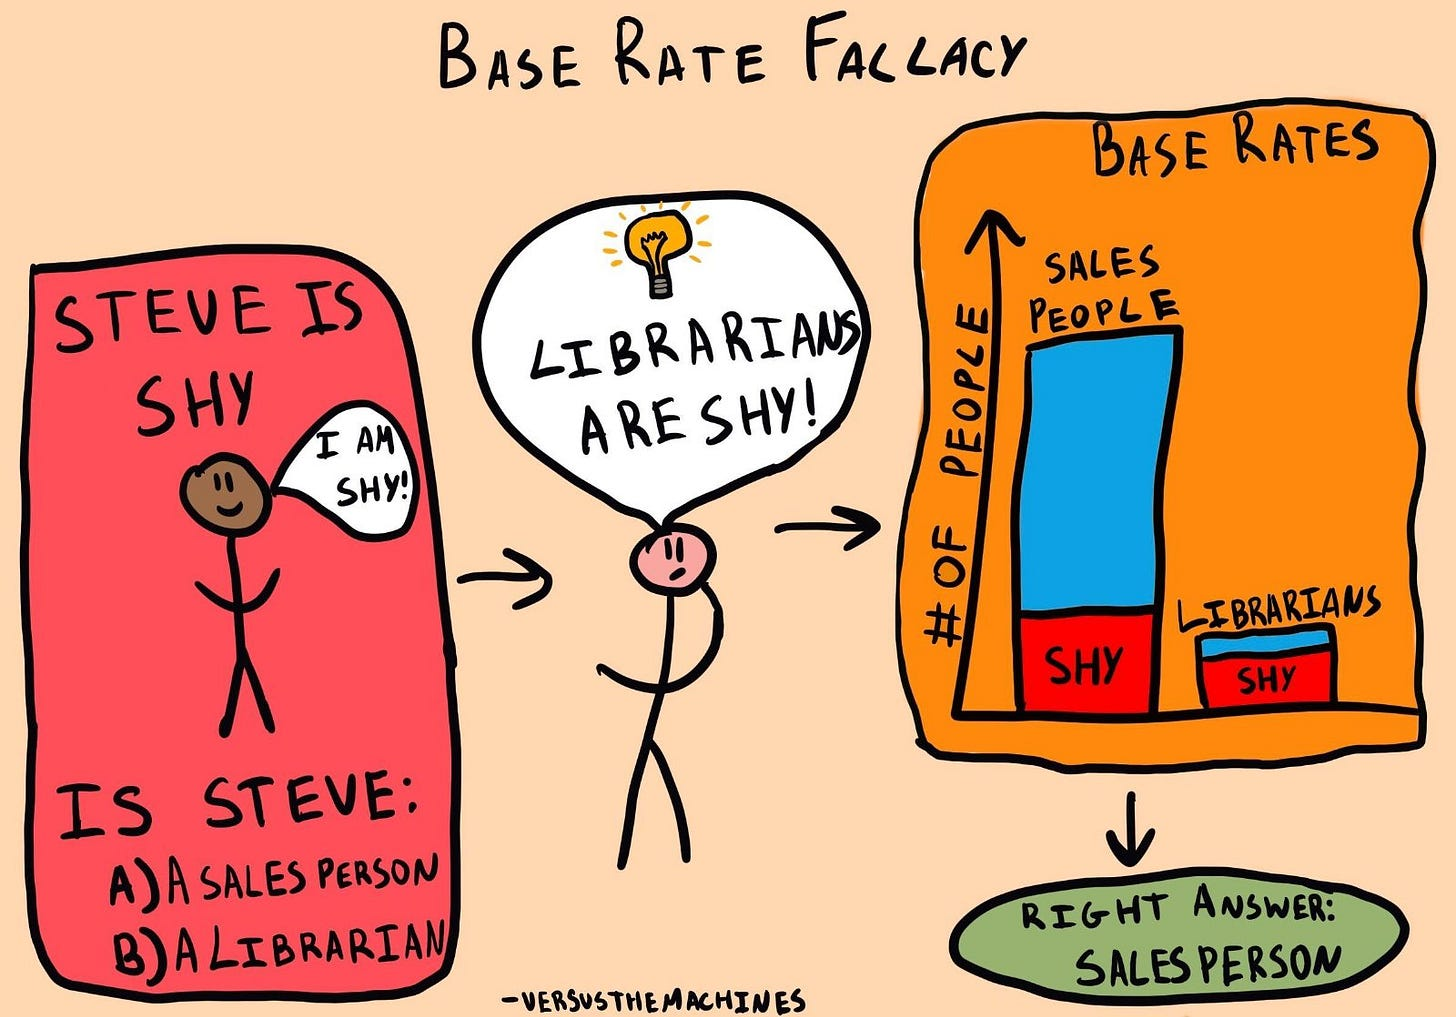 Base Rate Policy